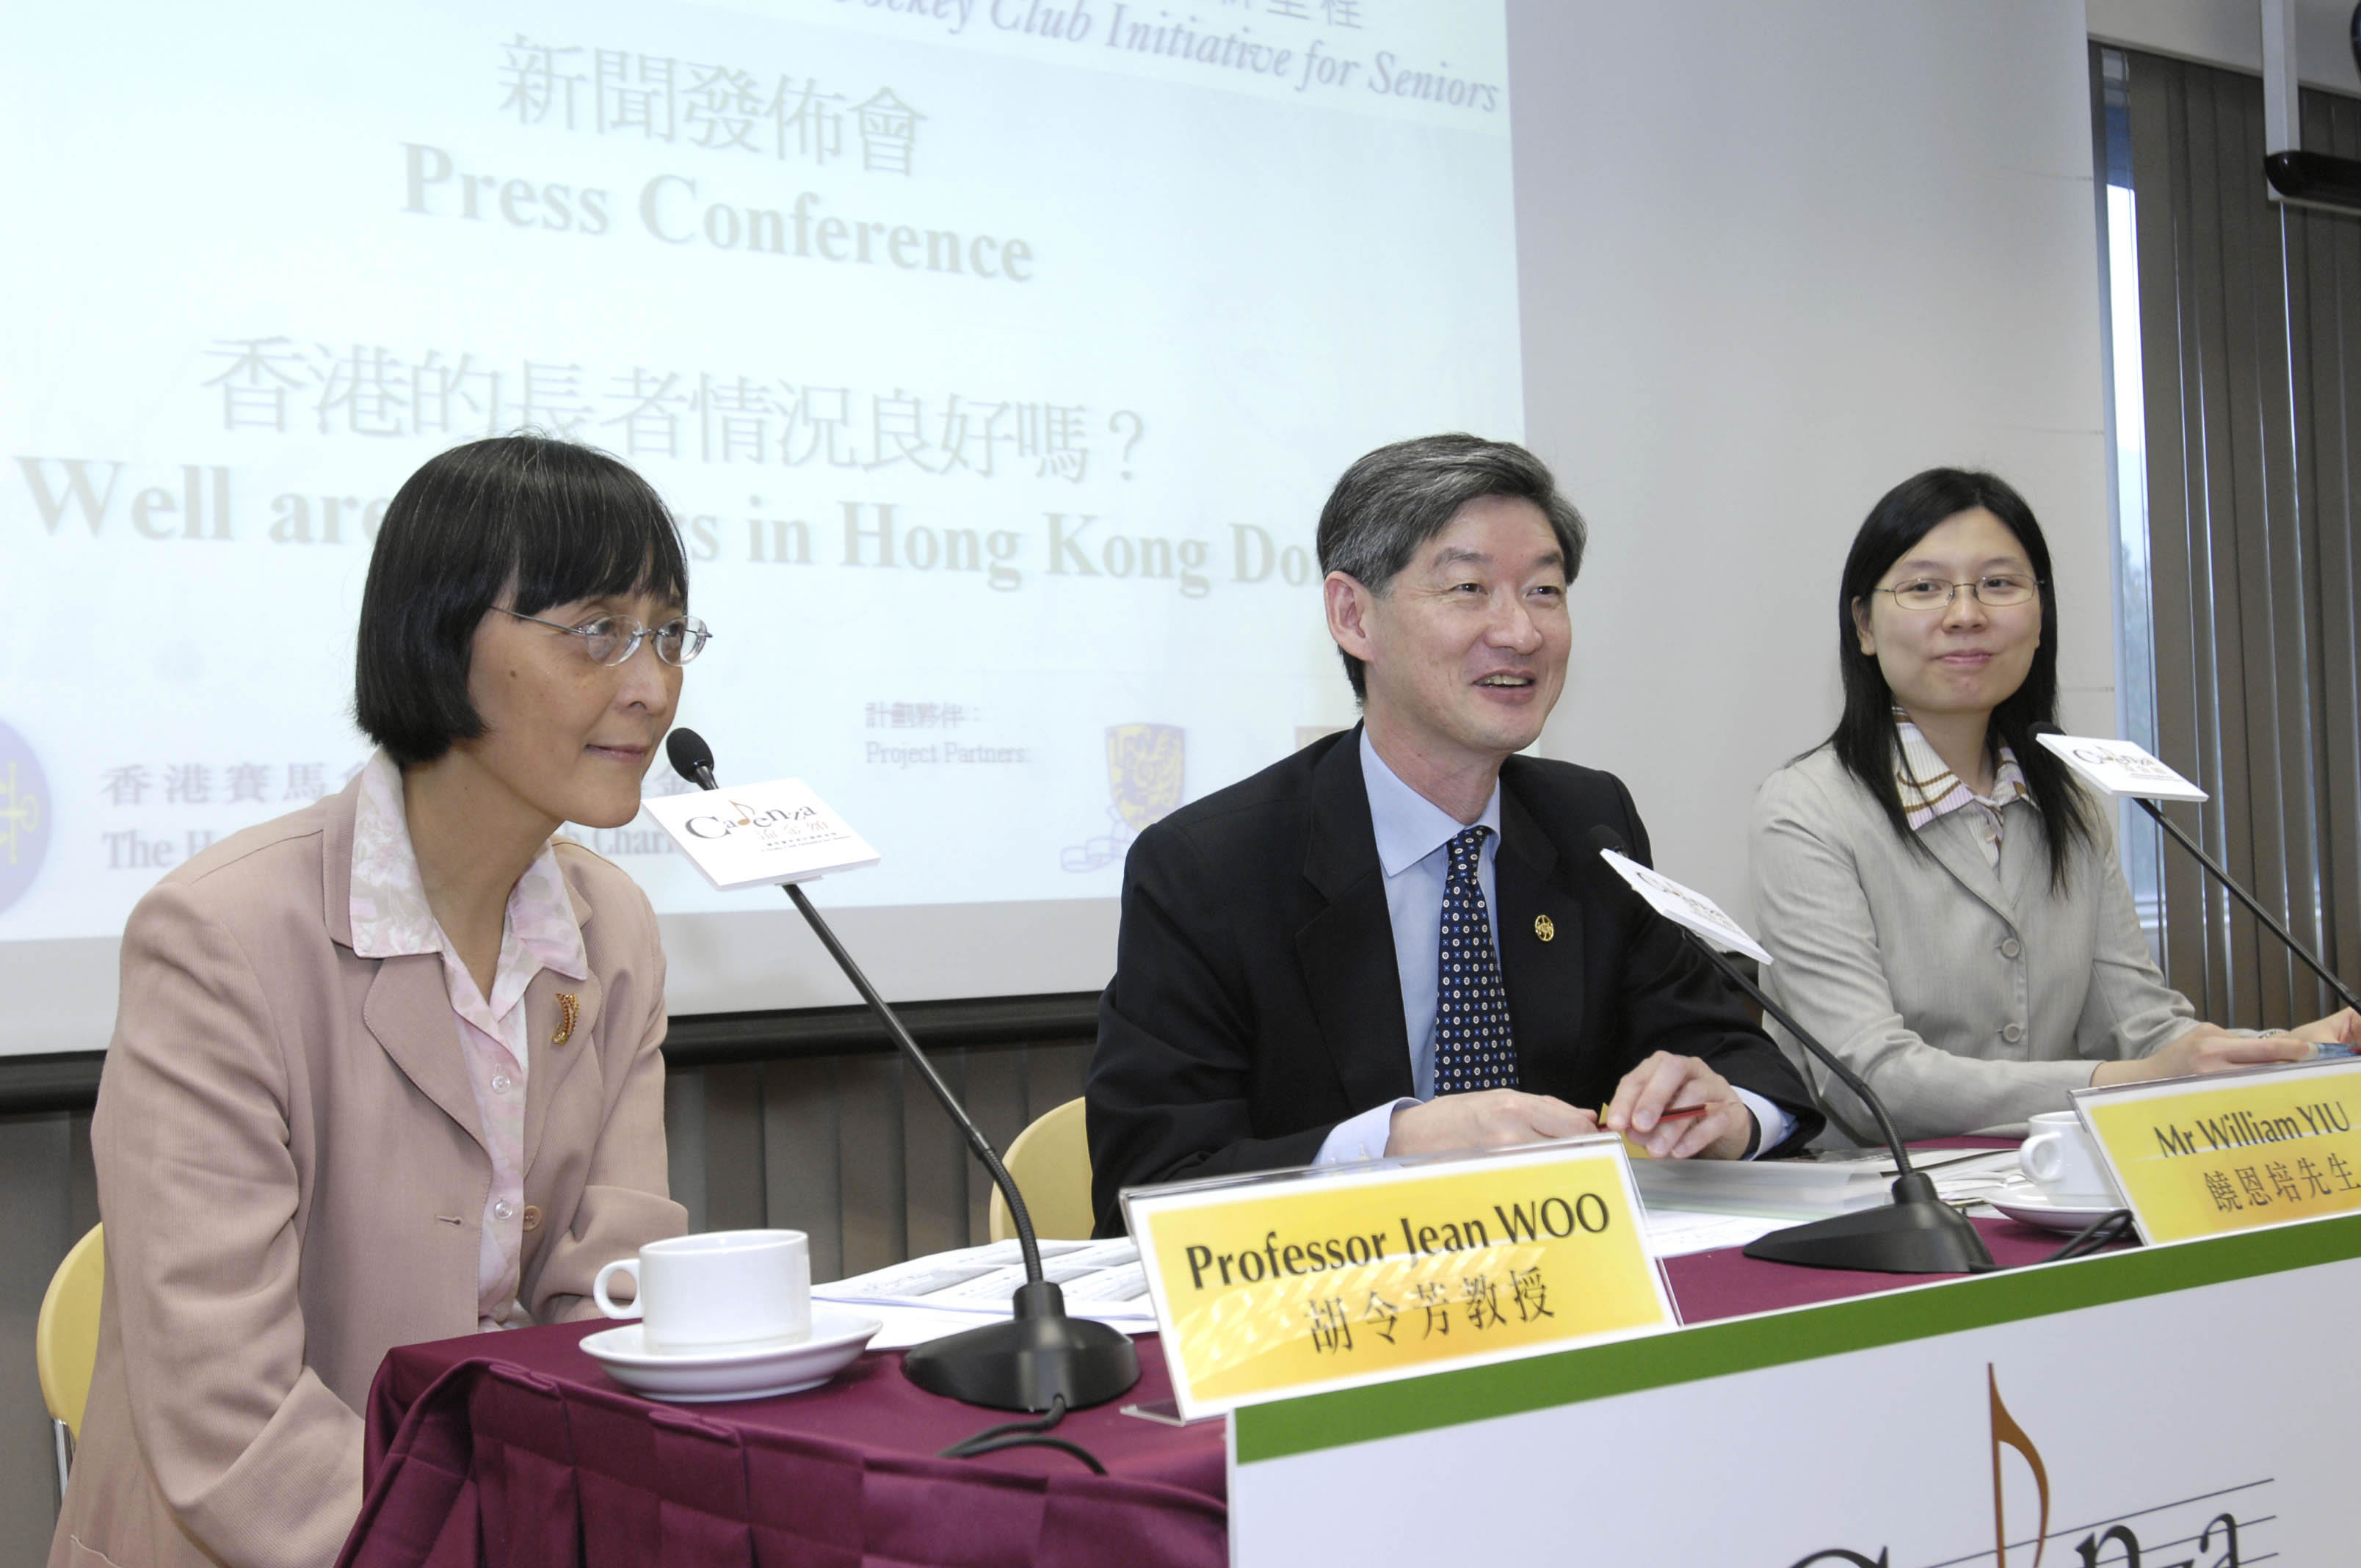 From left: 